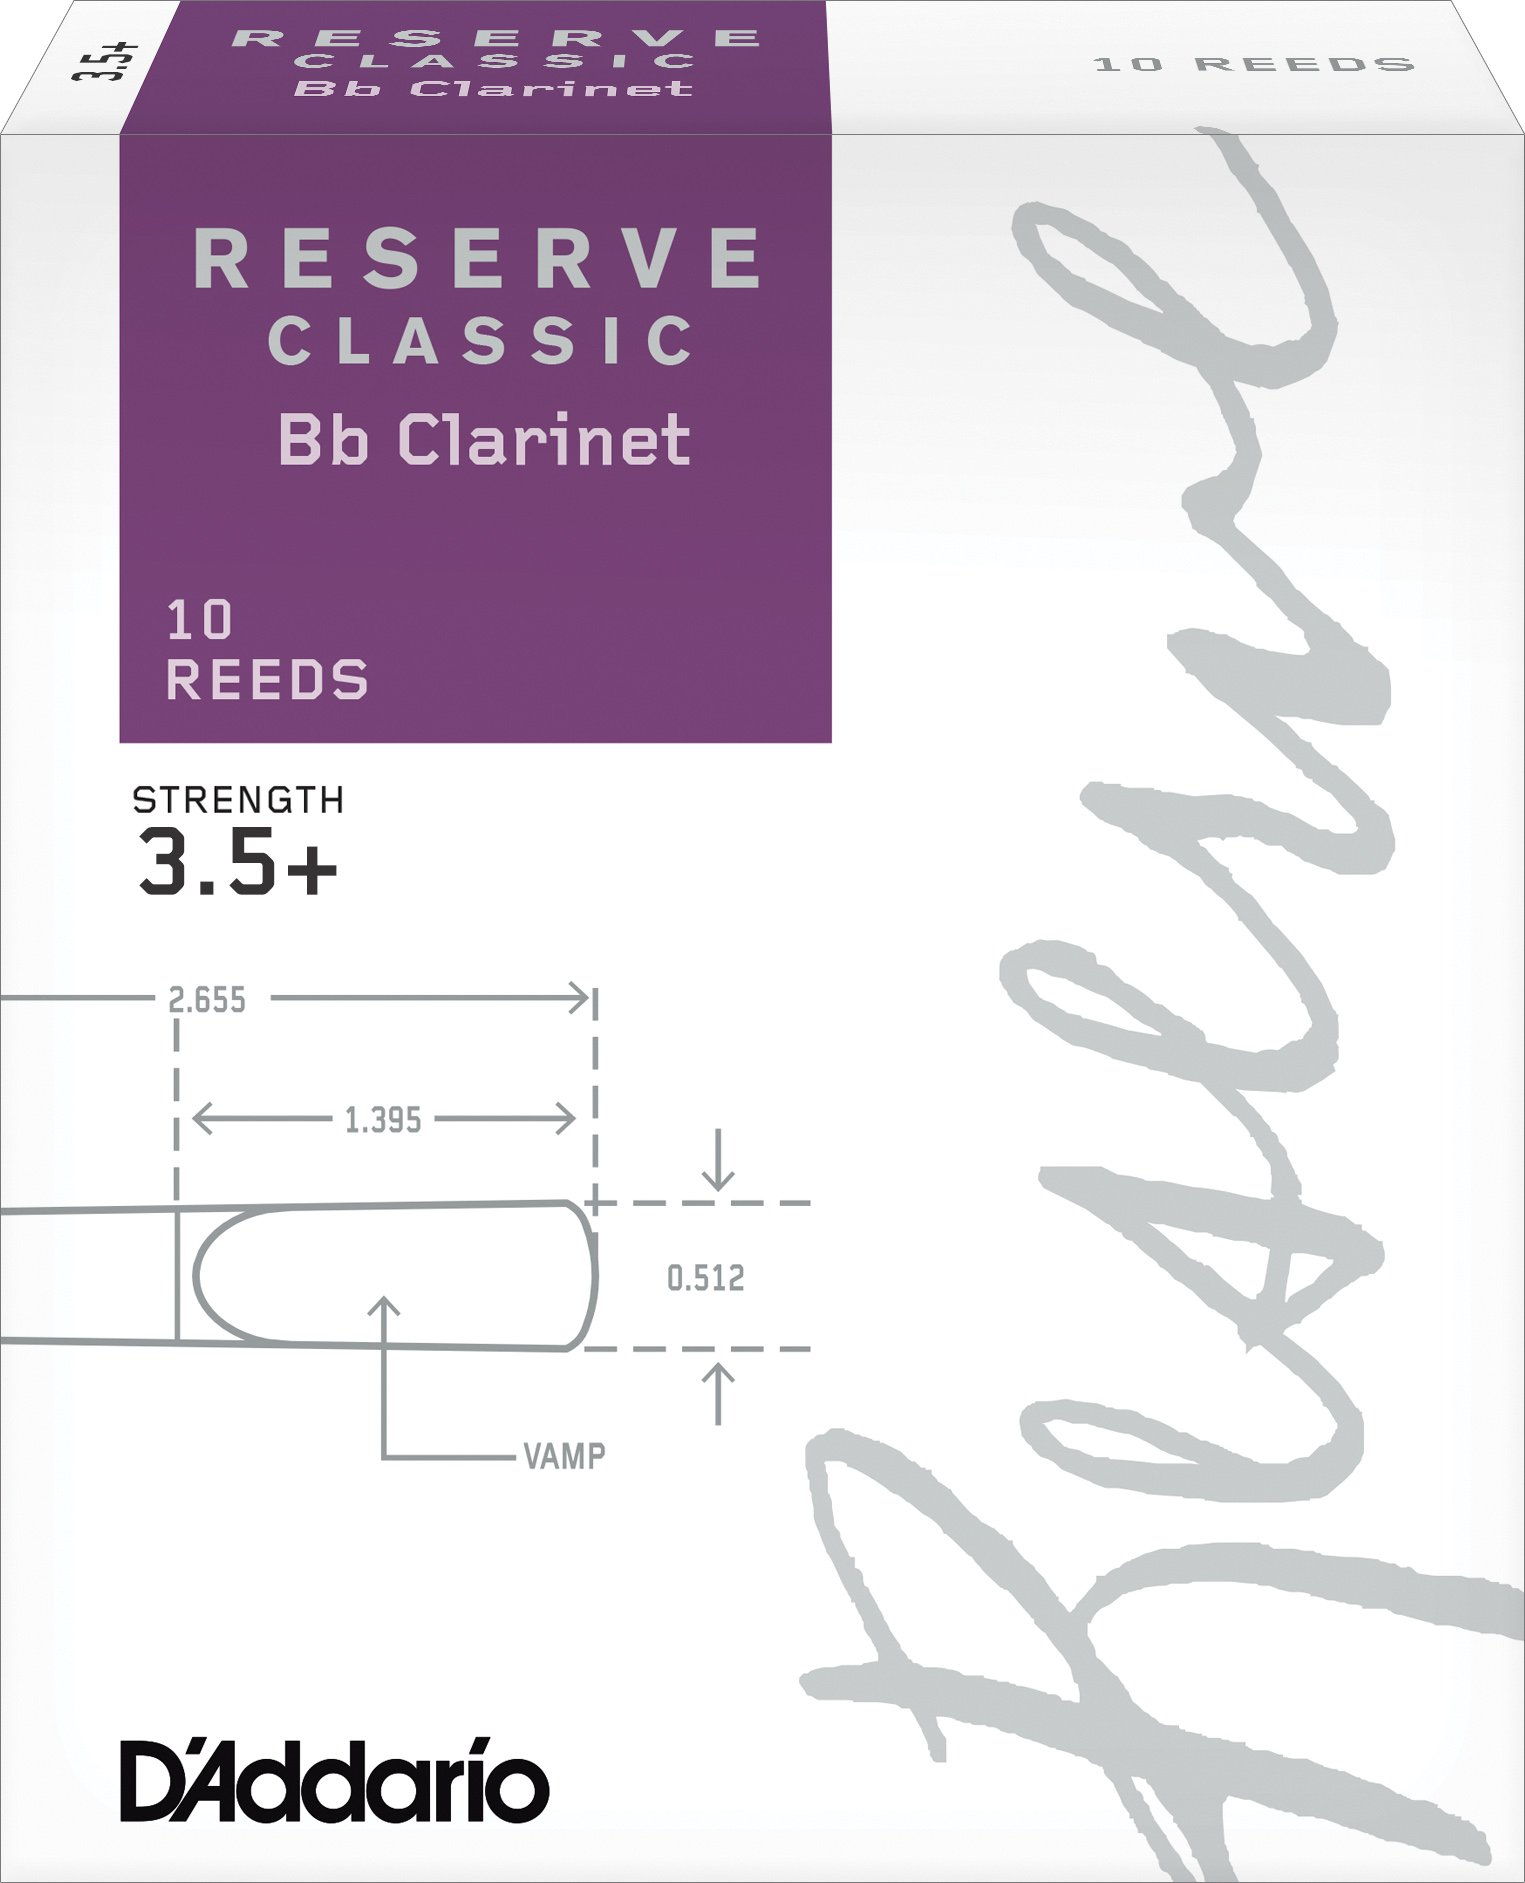 D'Addario Reserve Classic B♭ Clarinet Reeds, Strength 3.5+ (10-Pack) – Thick Blank Reed Offers a Rich, Warm Tone, Exceptional Performance and Consistency – Ideal for Advanced Students or Professionals